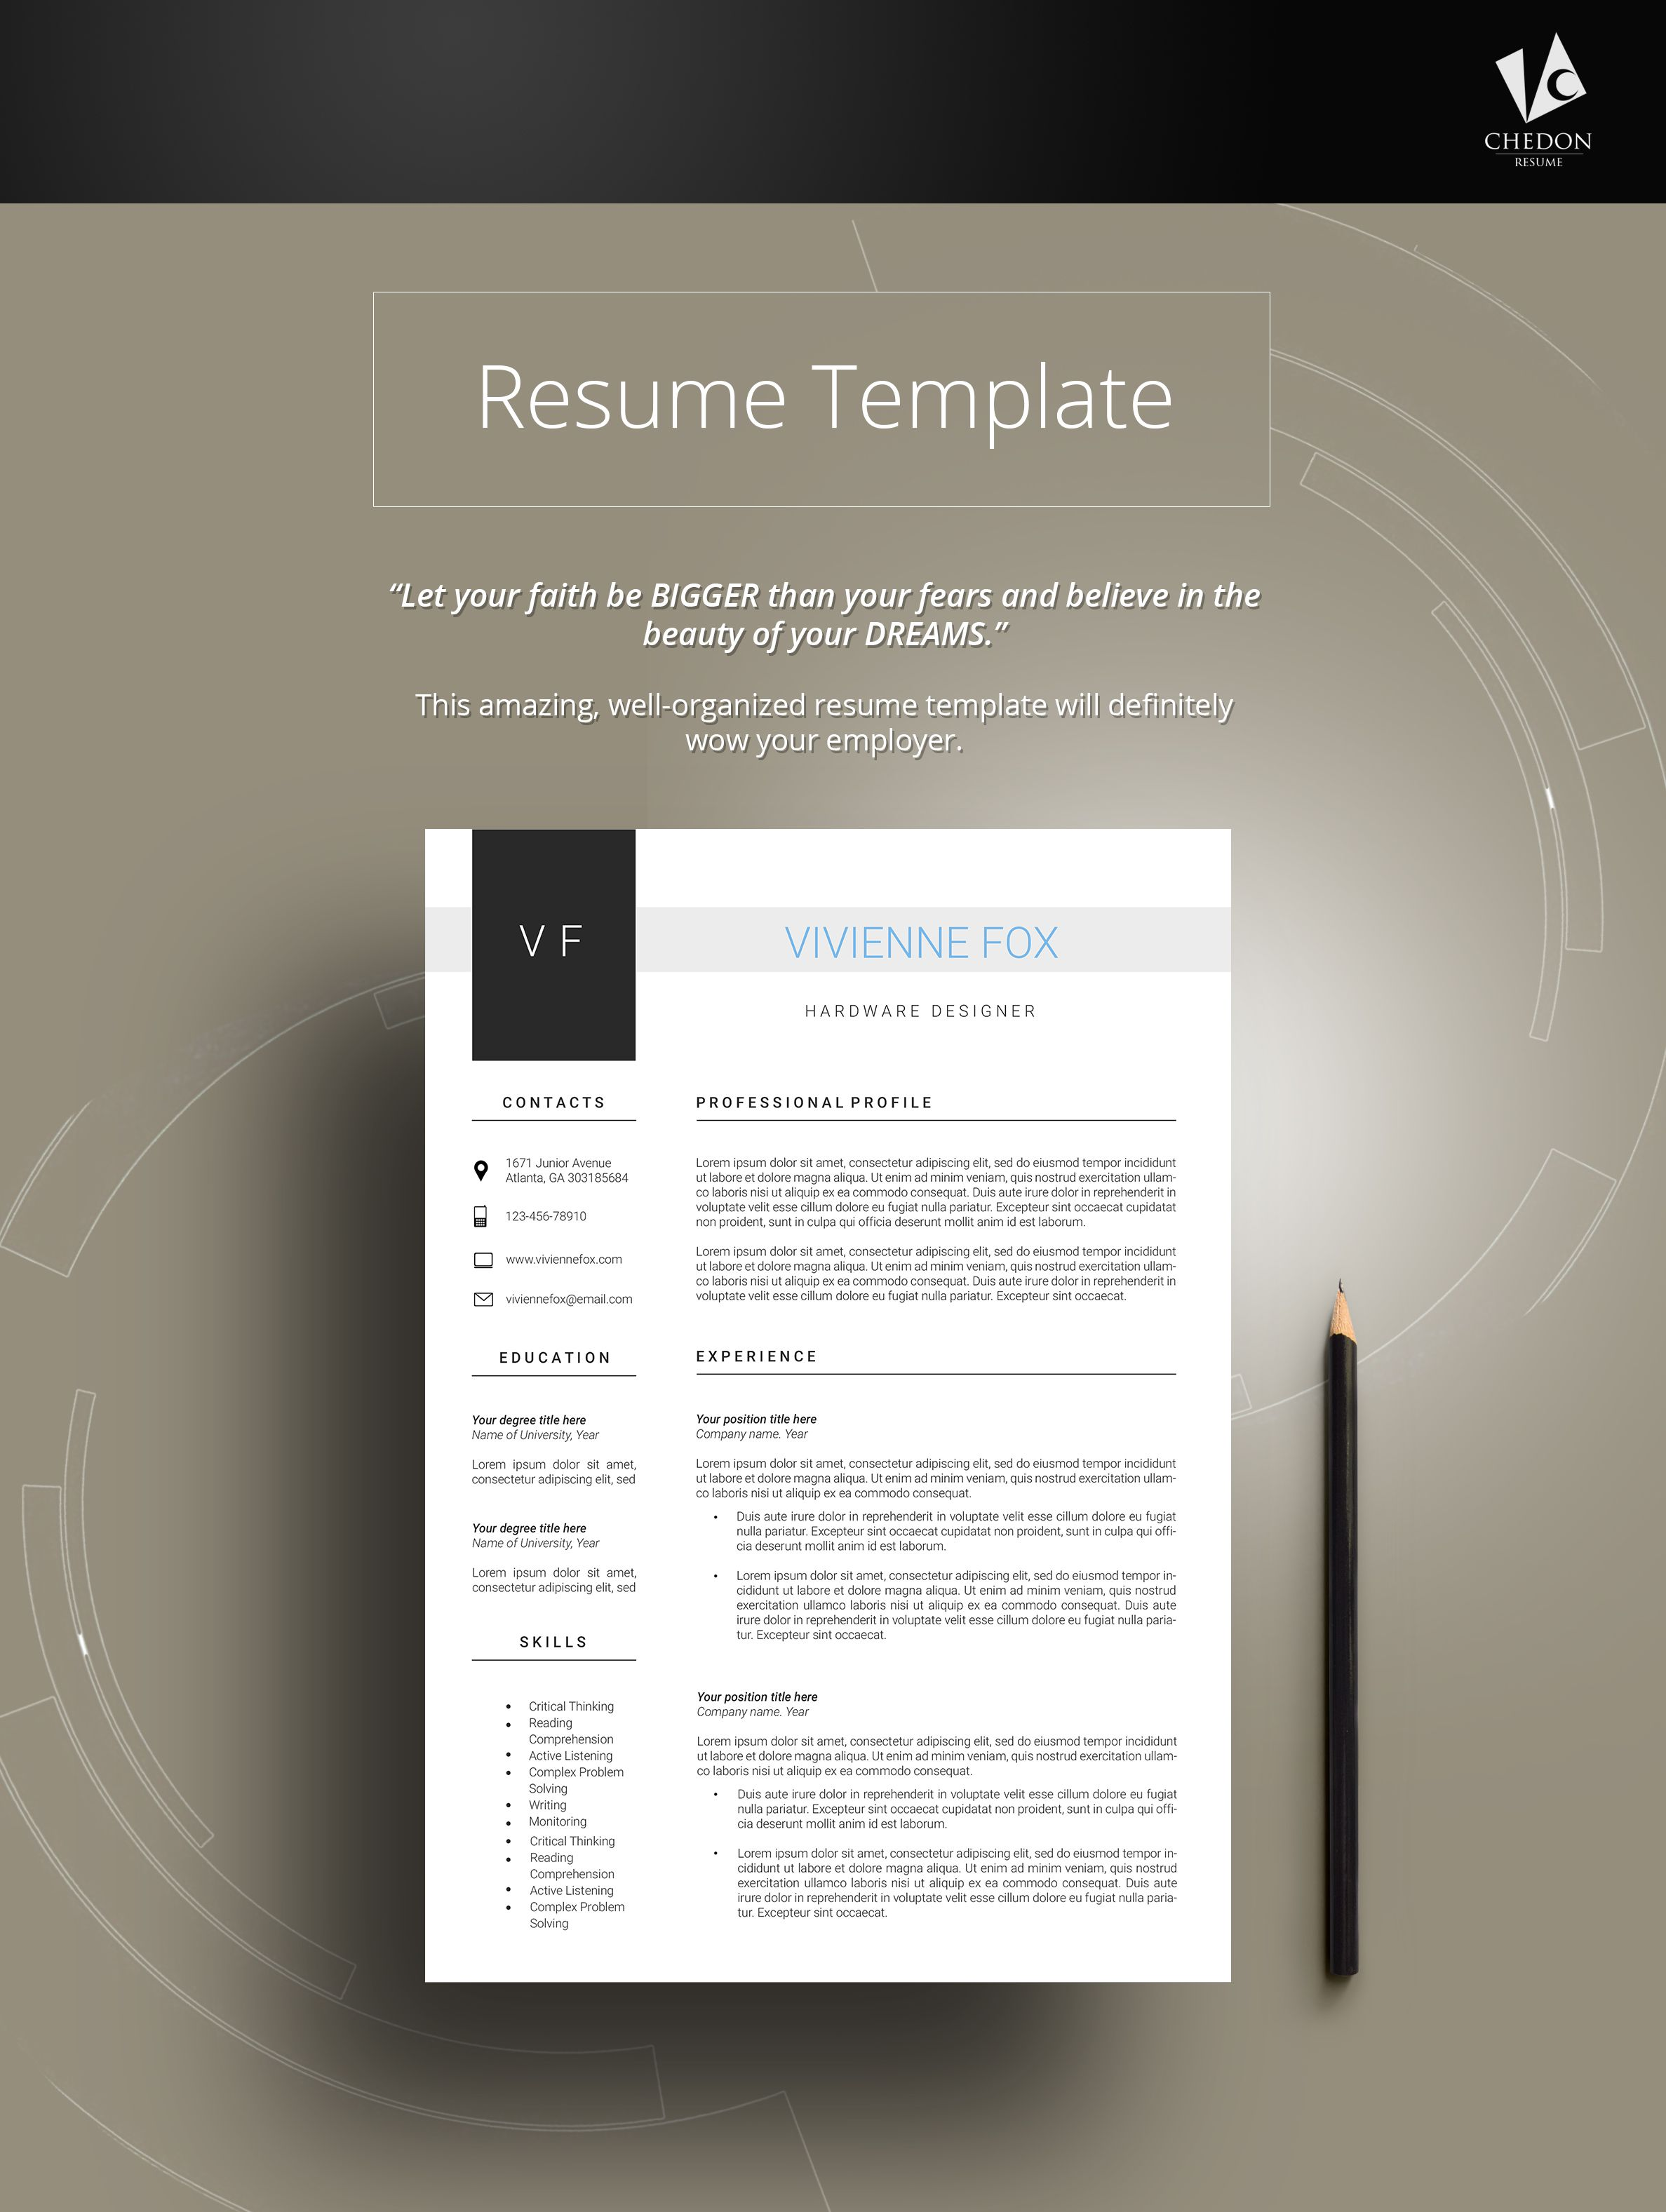 Superb LEICH RESUME This Amazing, Well Organized Resume Template Will Definitely  Wow Your Employer.